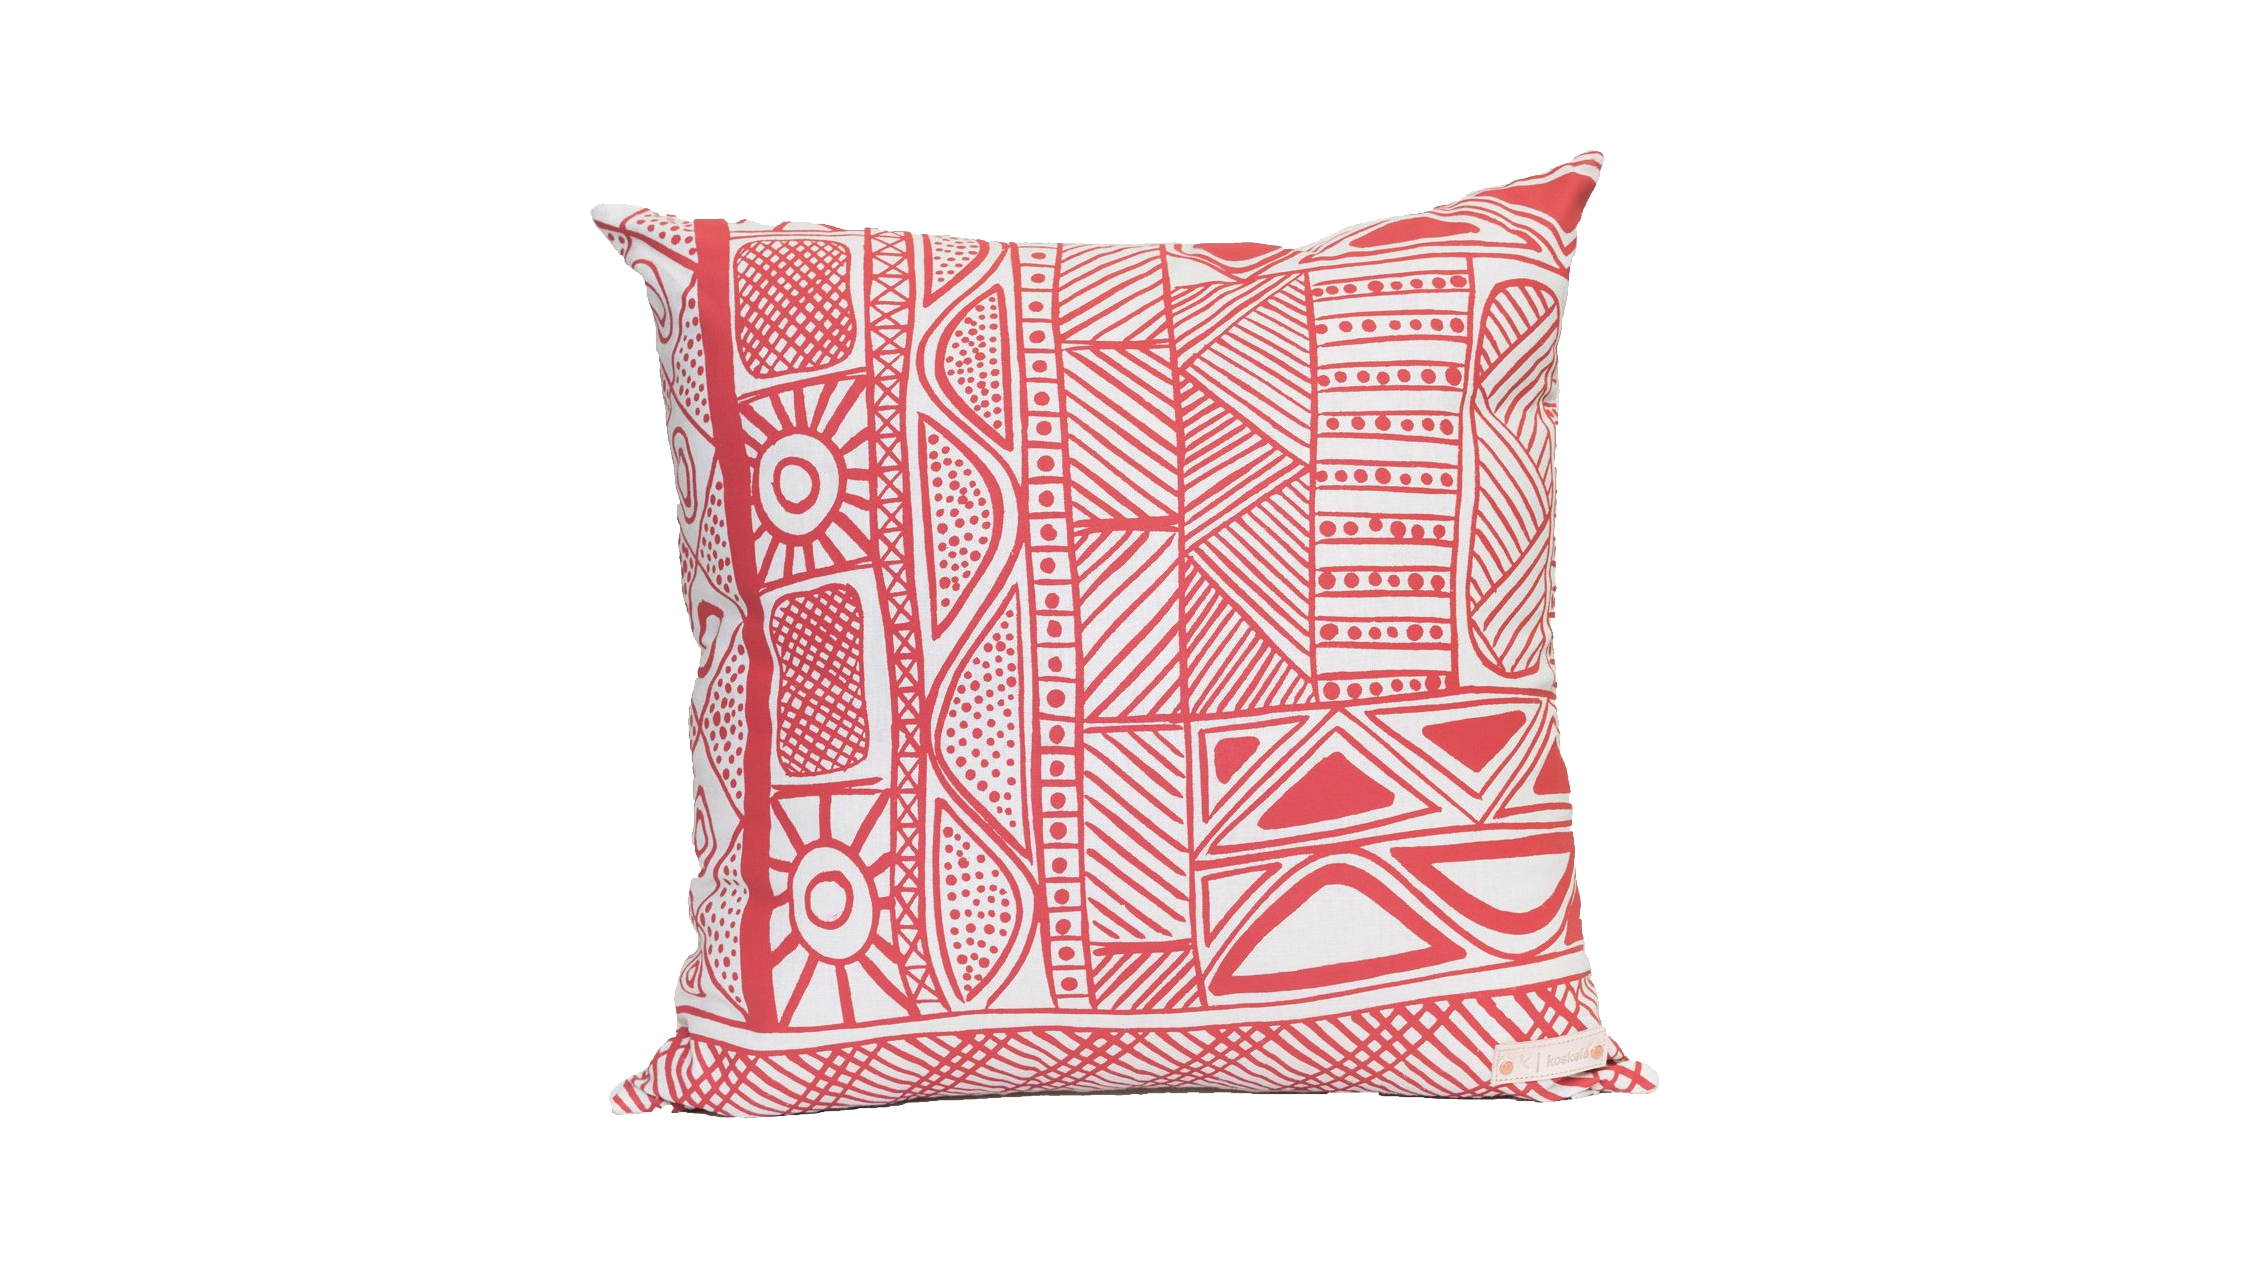 Jilamara Cushion - Patrick Freddy Puruntatameri - Jilamara - Red on Cream